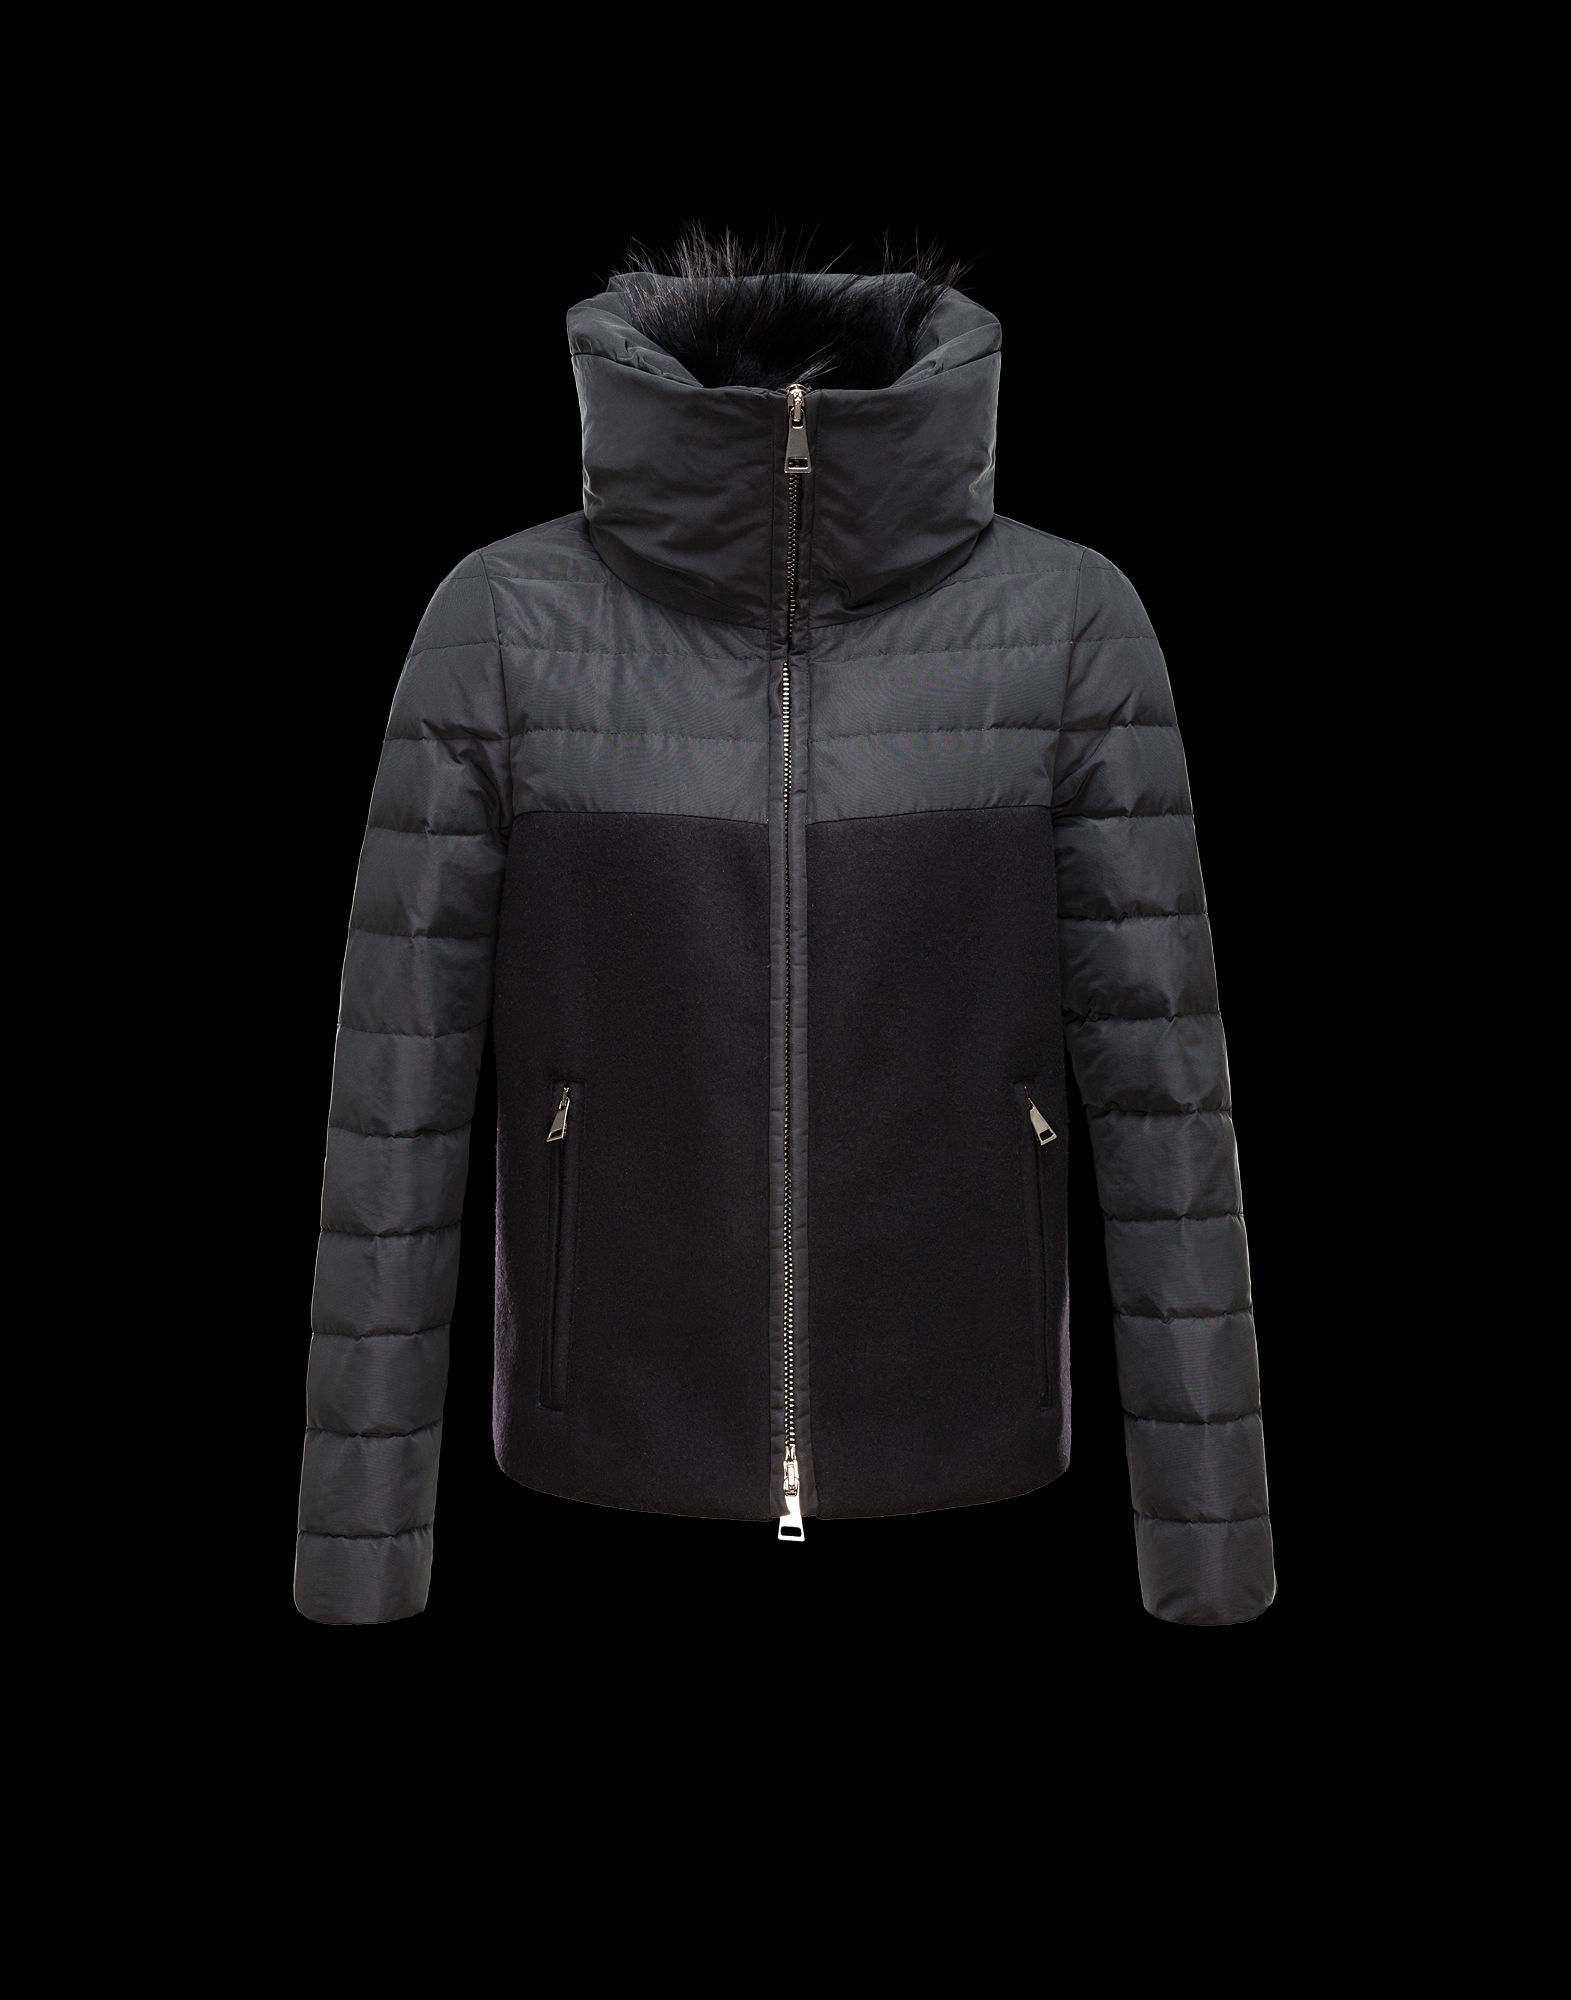 42c2621b8 Jacket Women Moncler - Original products on store.moncler.com | Moda ...